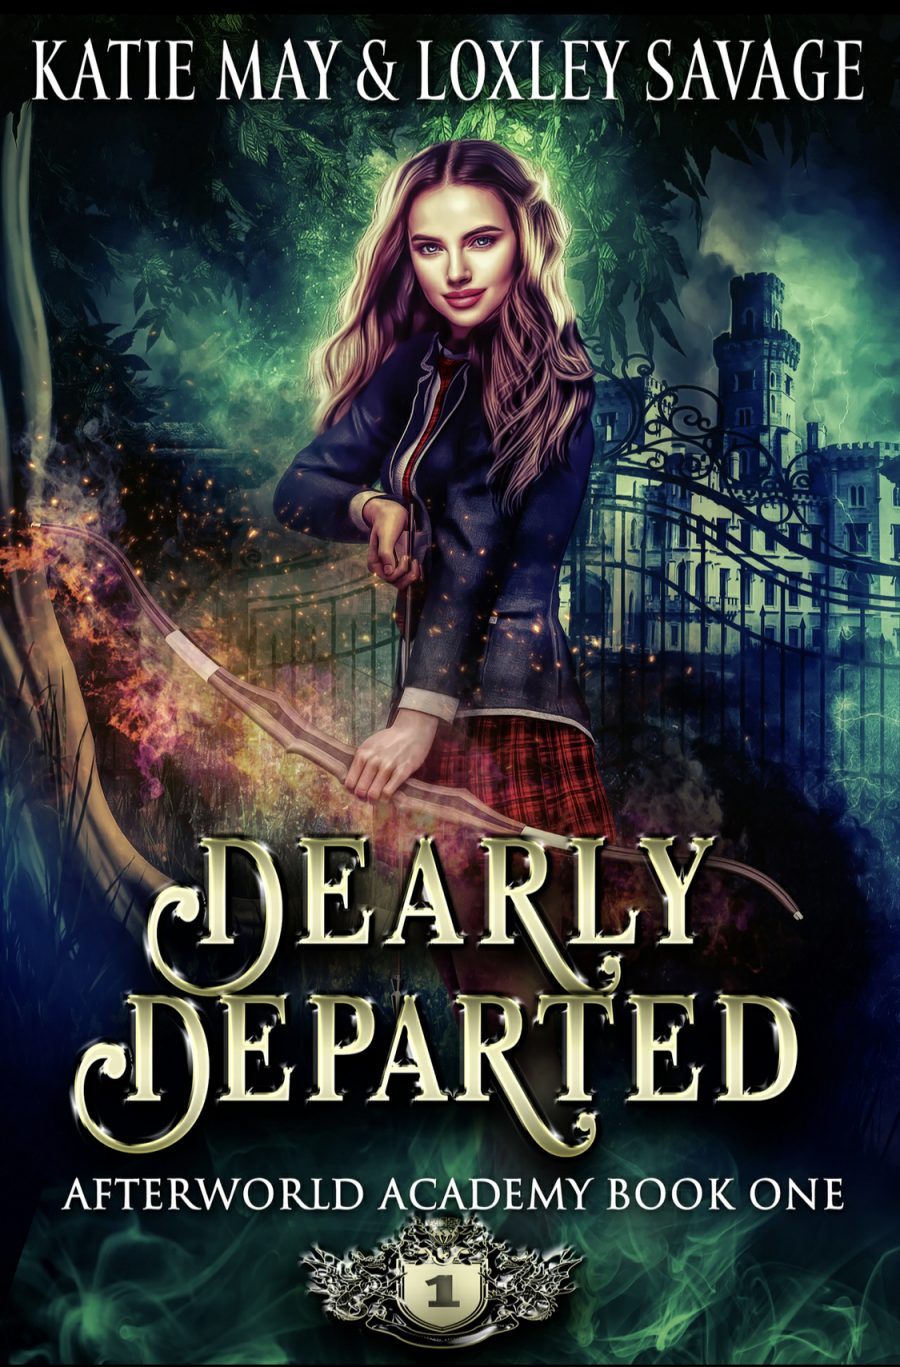 Dearly Departed by Katie May & Loxley Savage - A Book Review #BookReview #Fantasy #RH #Academy #MediumBurn #WhyChoose #ReverseHarem #WouldRecommend